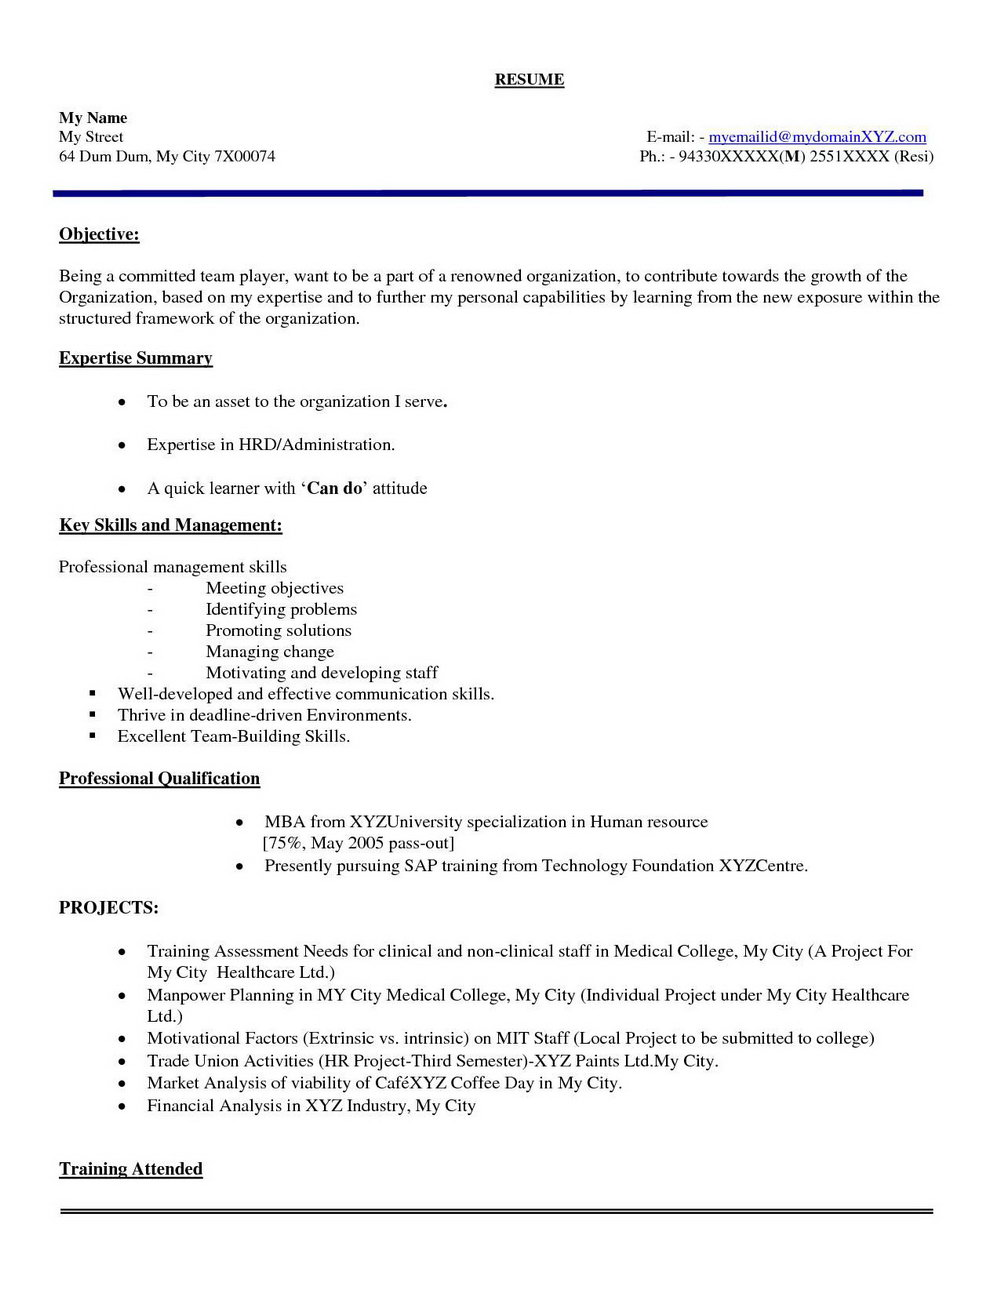 Resume Format Download In Ms Word 2003